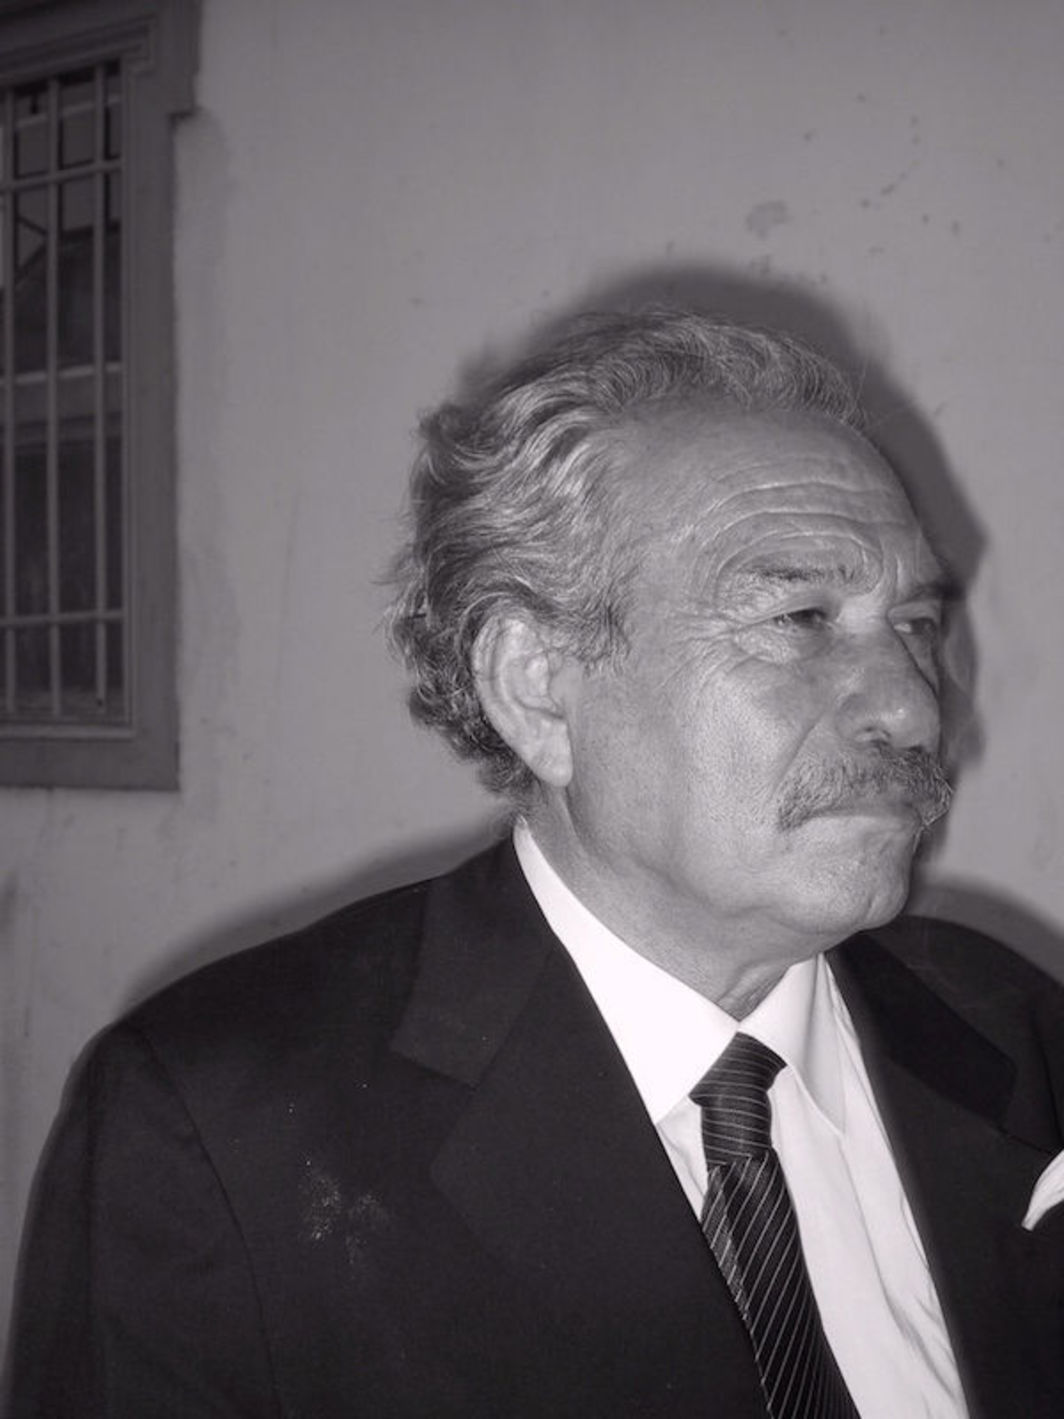 Jannis Kounellis, 2004. Photo: Flickr user Gabuchan.